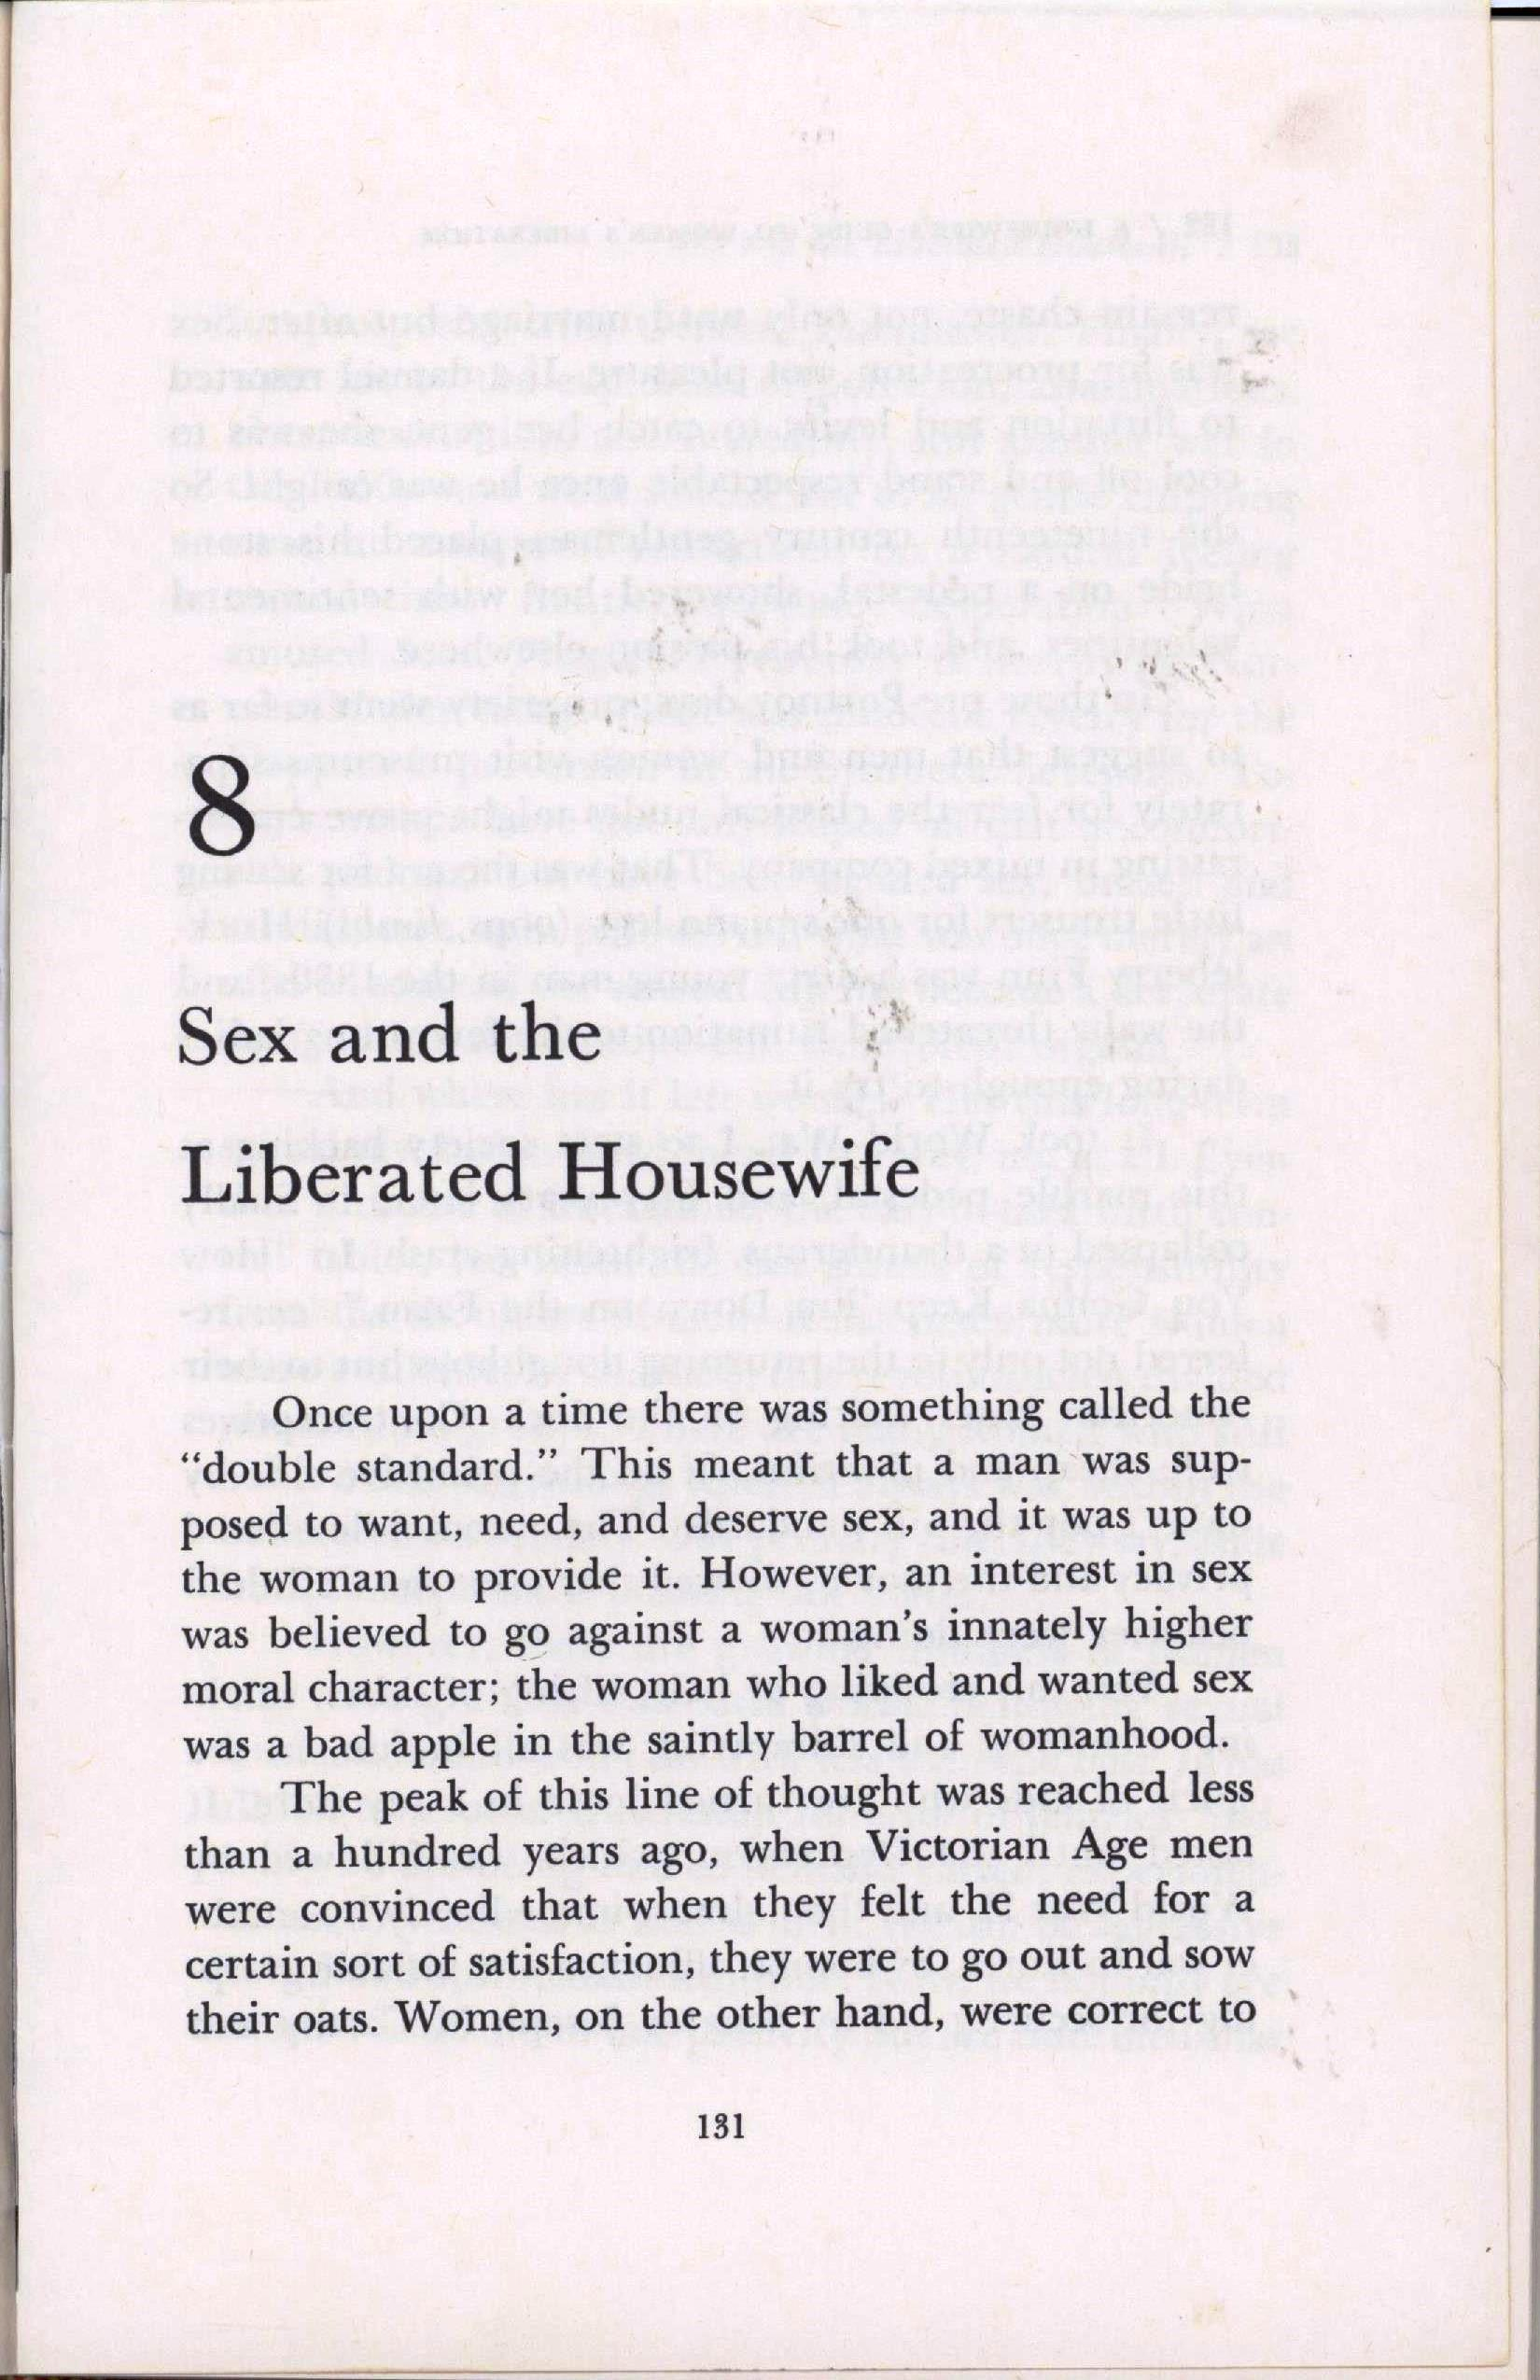 sex and the liberated housewife